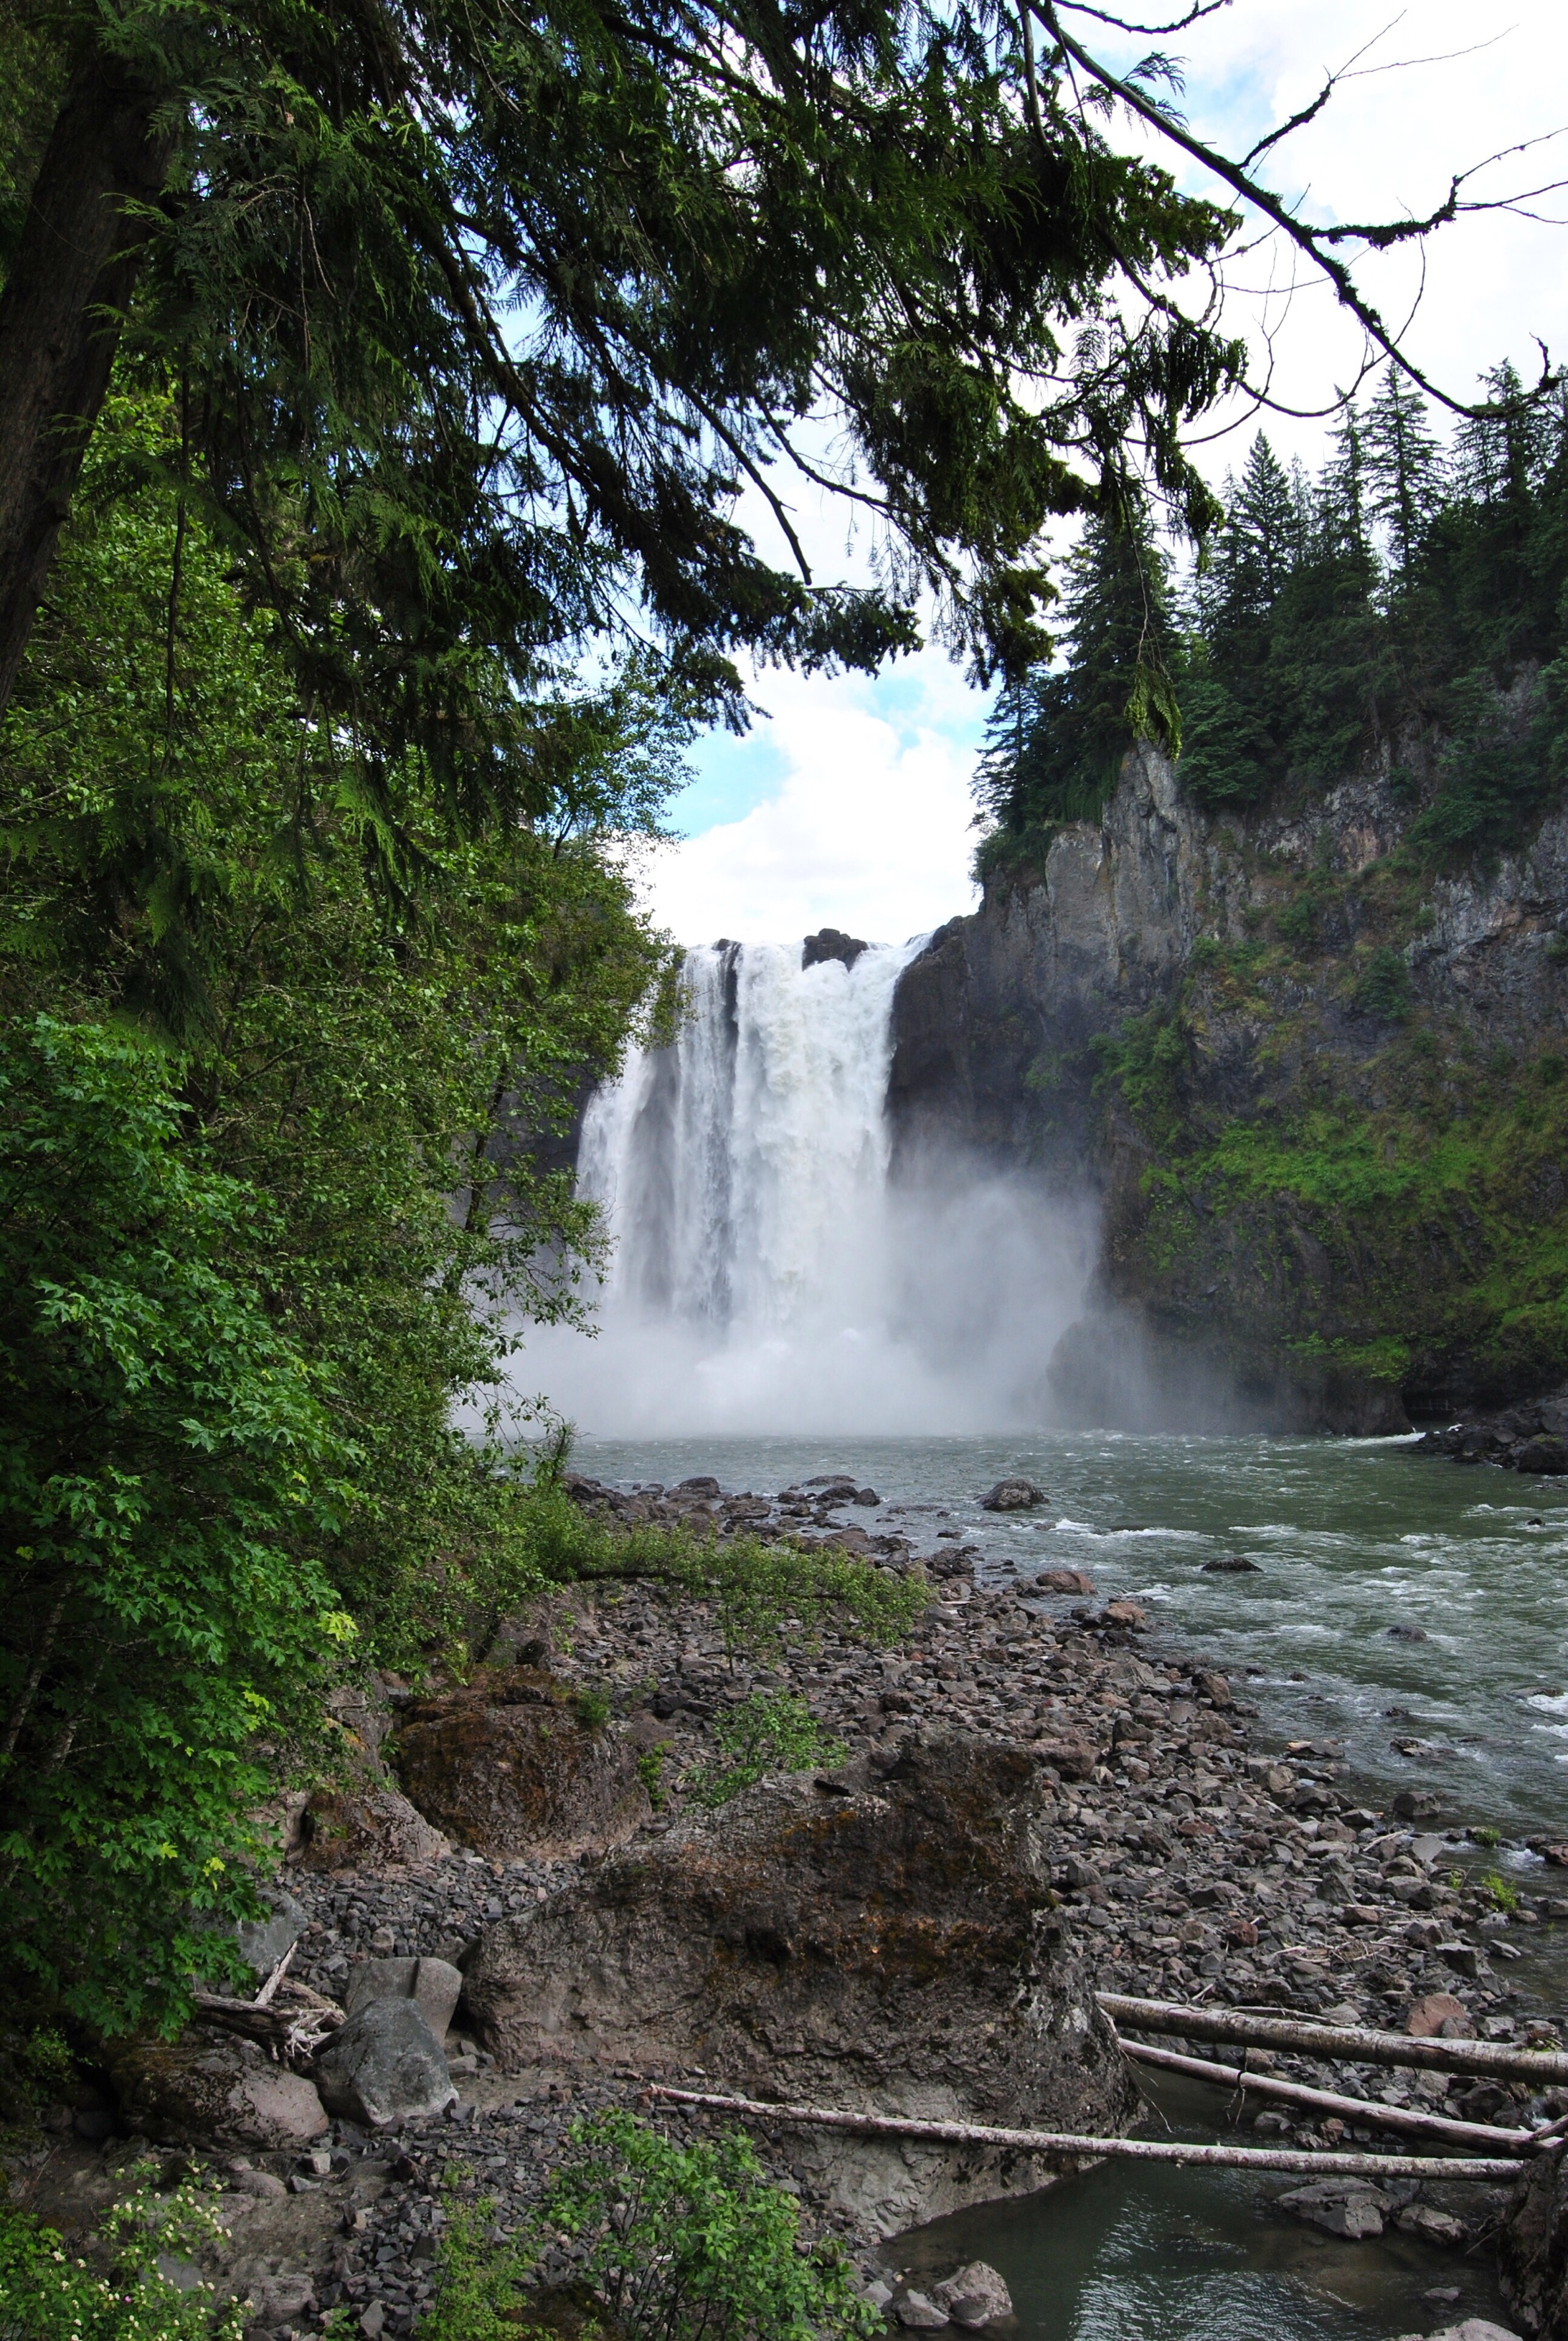 And the view from the bottom of the waterfall. I took this, dreading the walk back up.